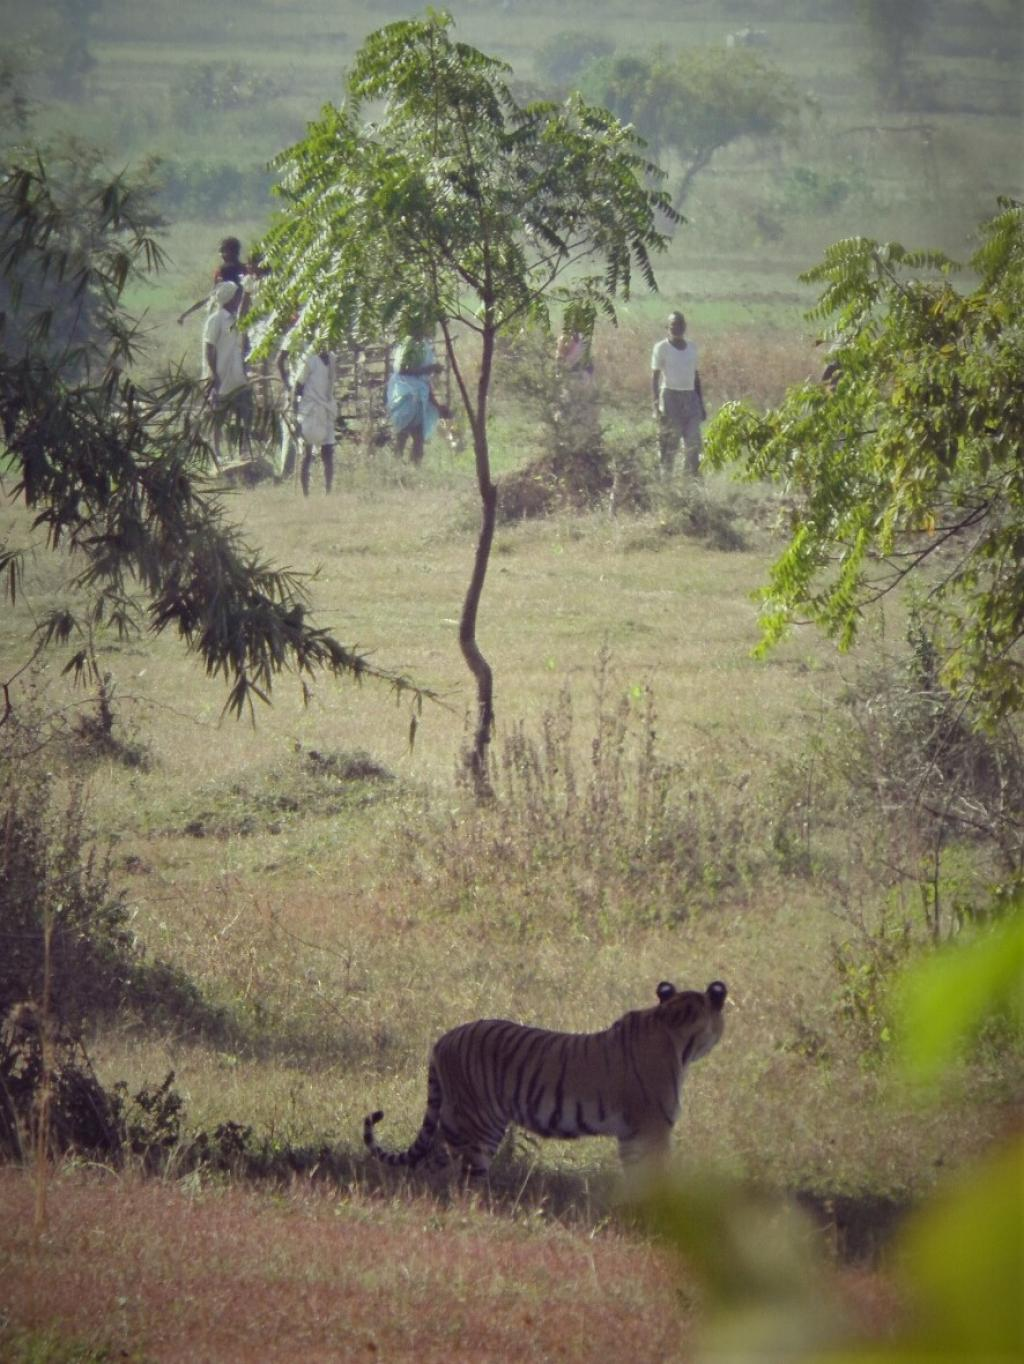 A tiger and people stare at each other in Maharashtra's Tadoba-Andhari Tiger Reserve. Photo: Abhijeet Sanjay Bayani